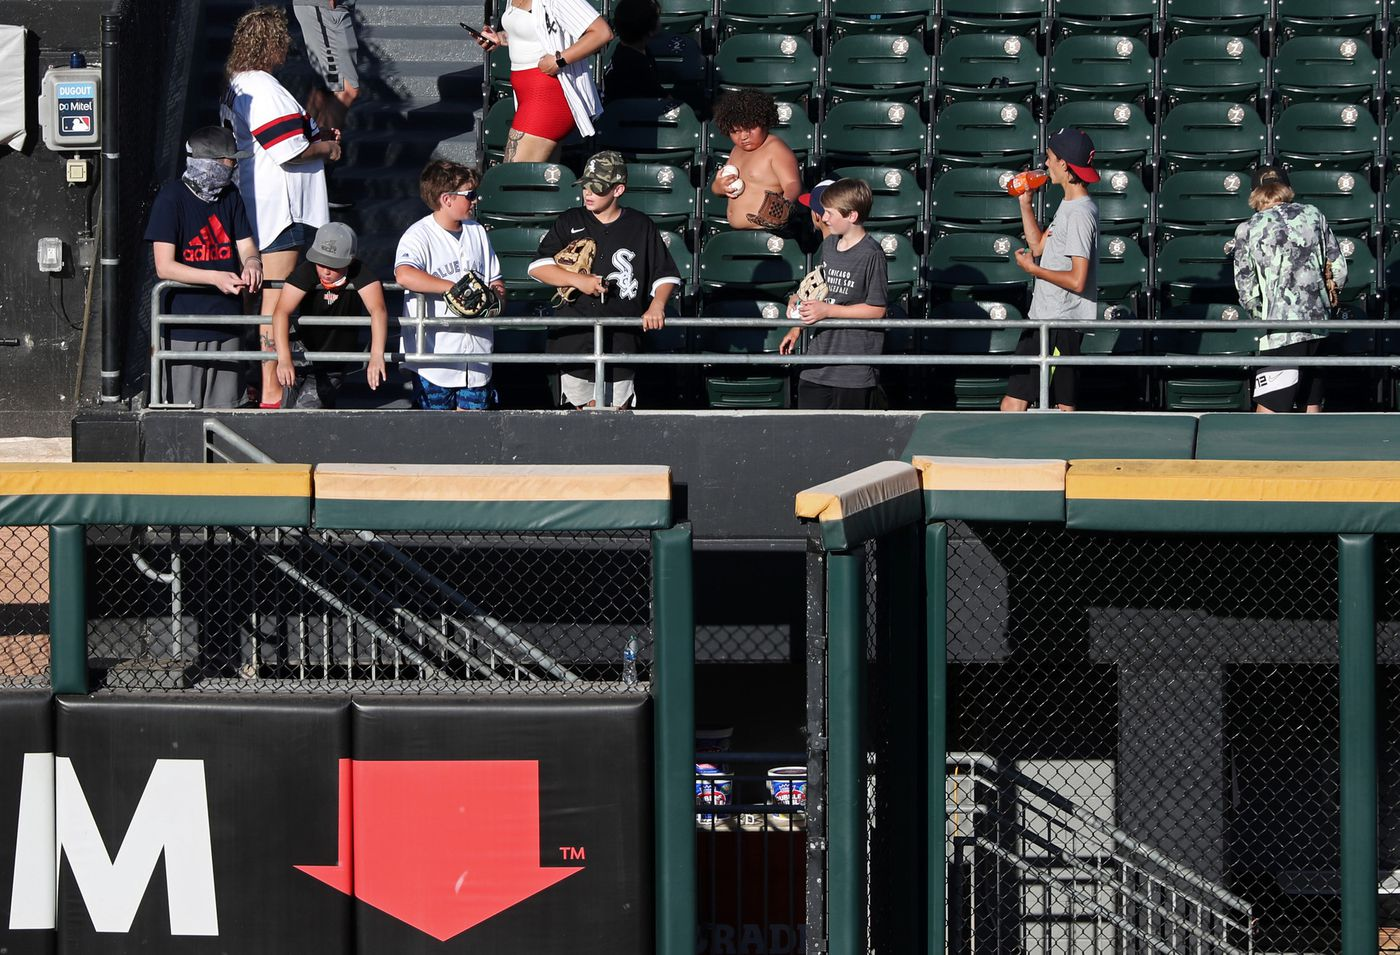 A young fan holds two baseballs as he and other young fans stand near the bullpen before a game between the White Sox and Blue Jays on June 10, 2021, at Guaranteed Rate Field.